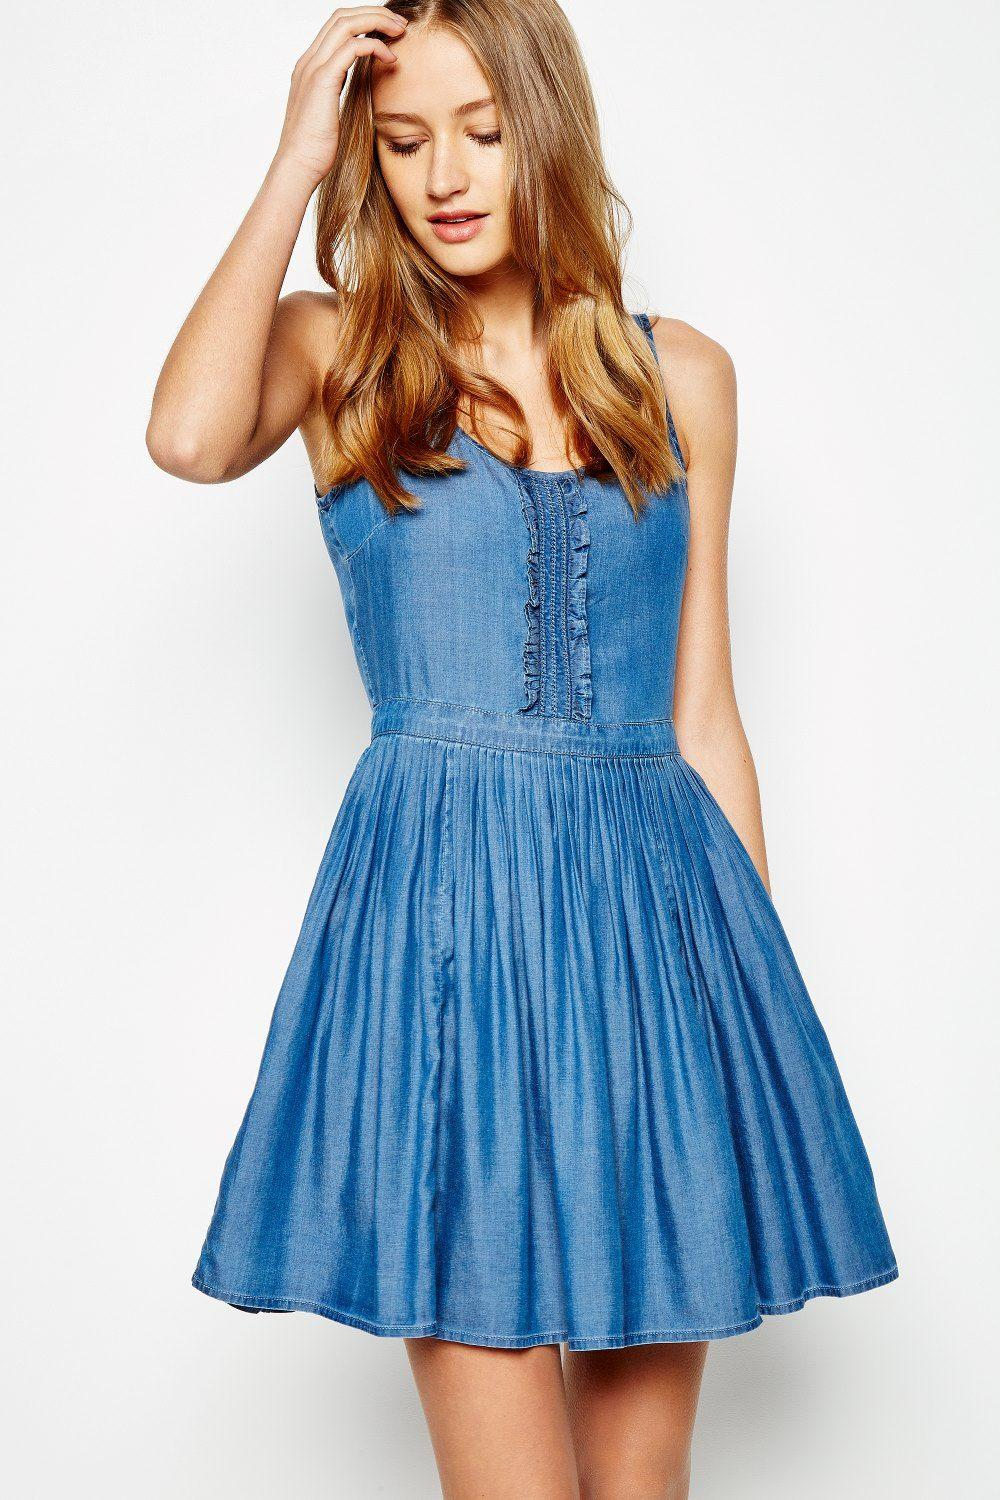 Up to 60% OffWomen's Dresses @ Jack Wills